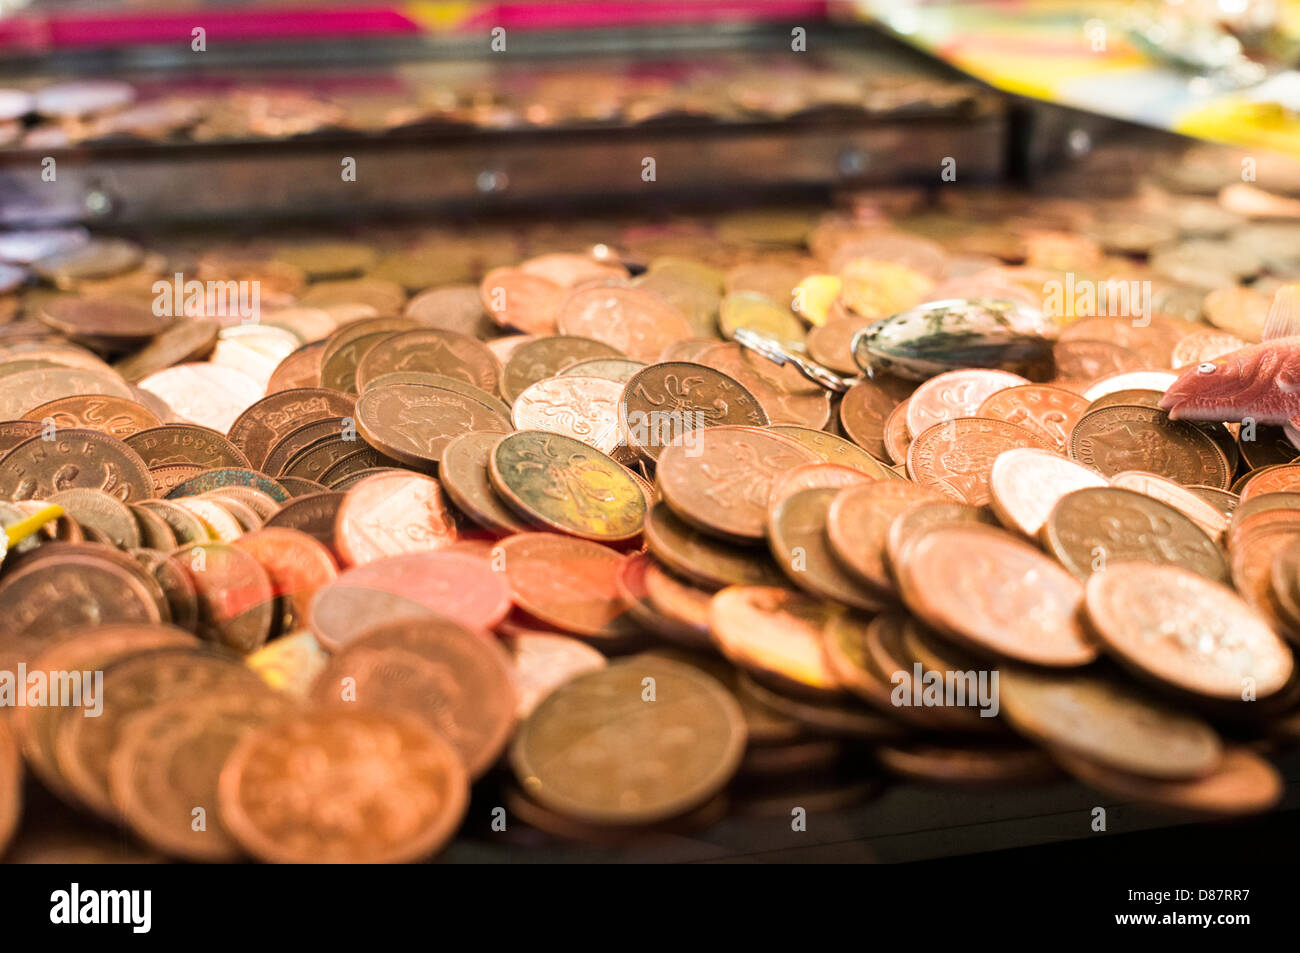 Money - Piles of 2p pieces in an amusement arcade penny falls game, UK - Stock Image